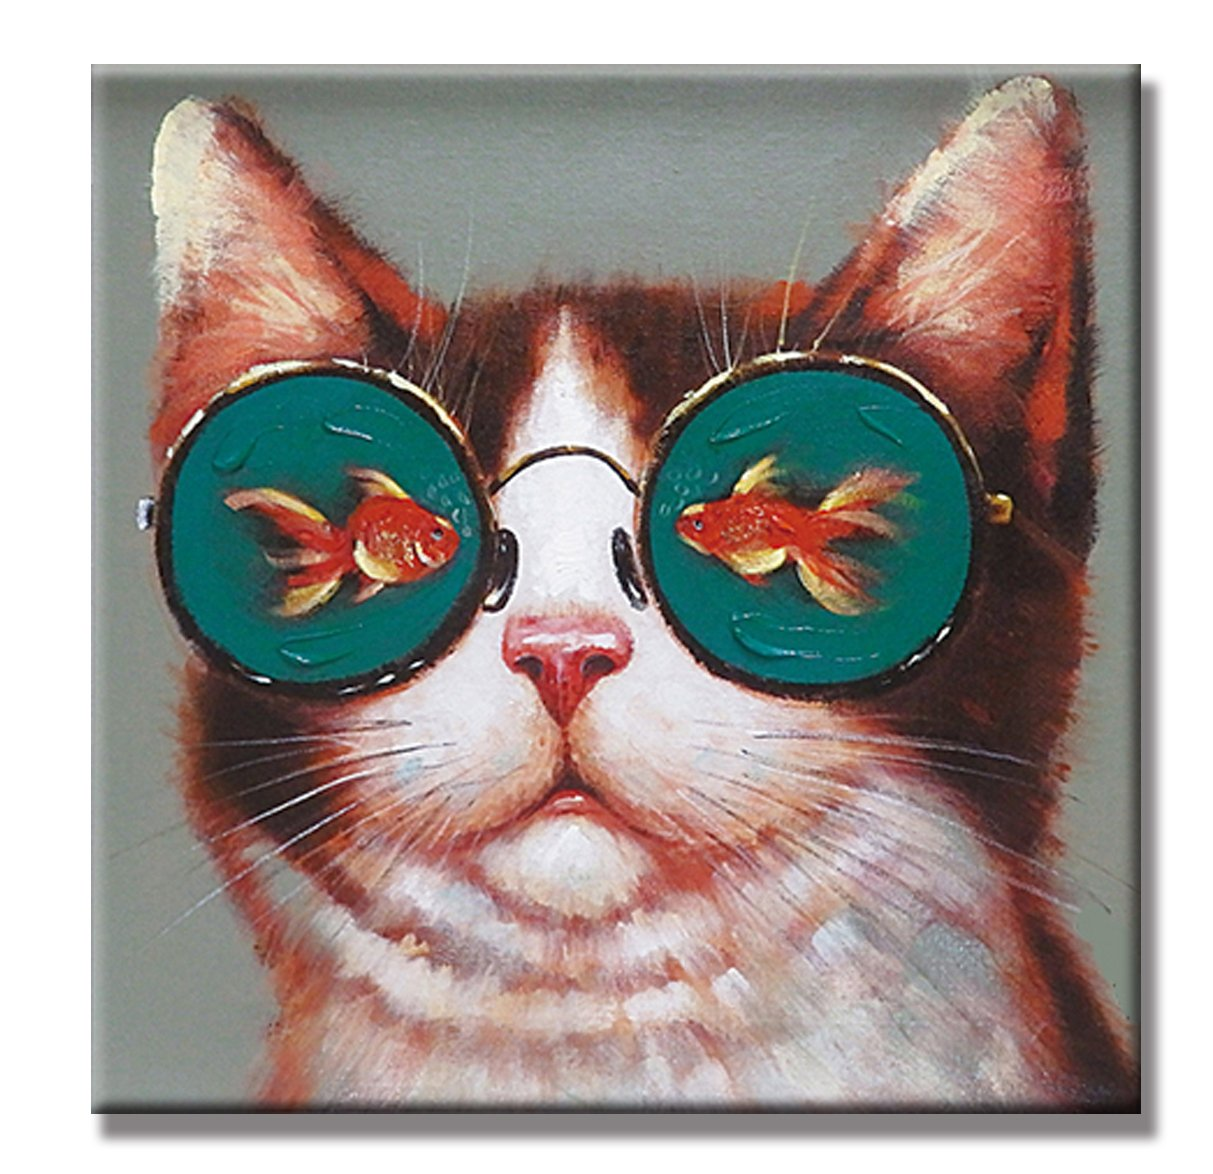 SEVEN WALL ARTS Modern Animal Artwork 100% Hand-painted Oil Painting Stretched and Framed Ready to Hang for Living Room (24 x 24 Inch, Cat loves Fish)